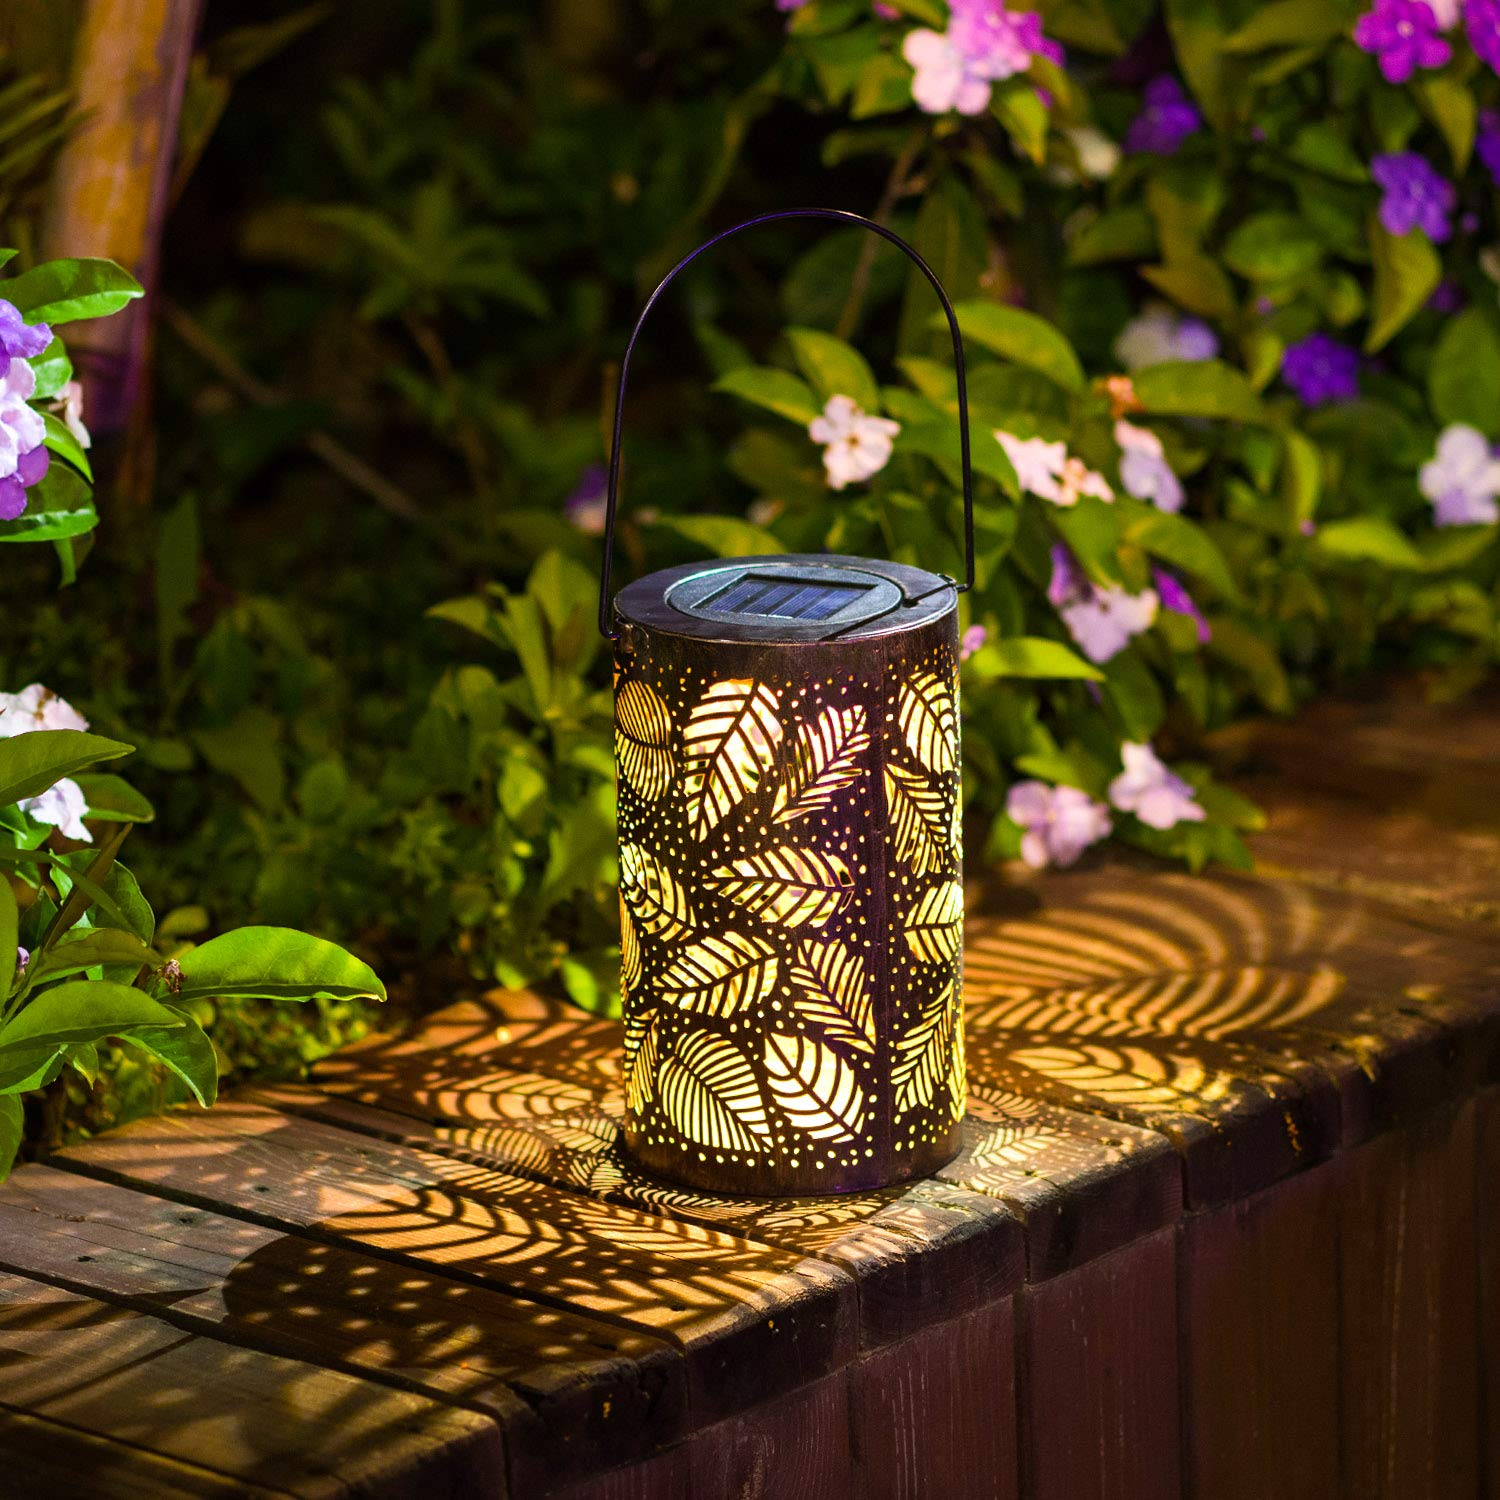 solar lantern lights upgrade outdoor garden lawn hanging lights metal bronze leaf pattern lights lamp for patio outside table light auto on off